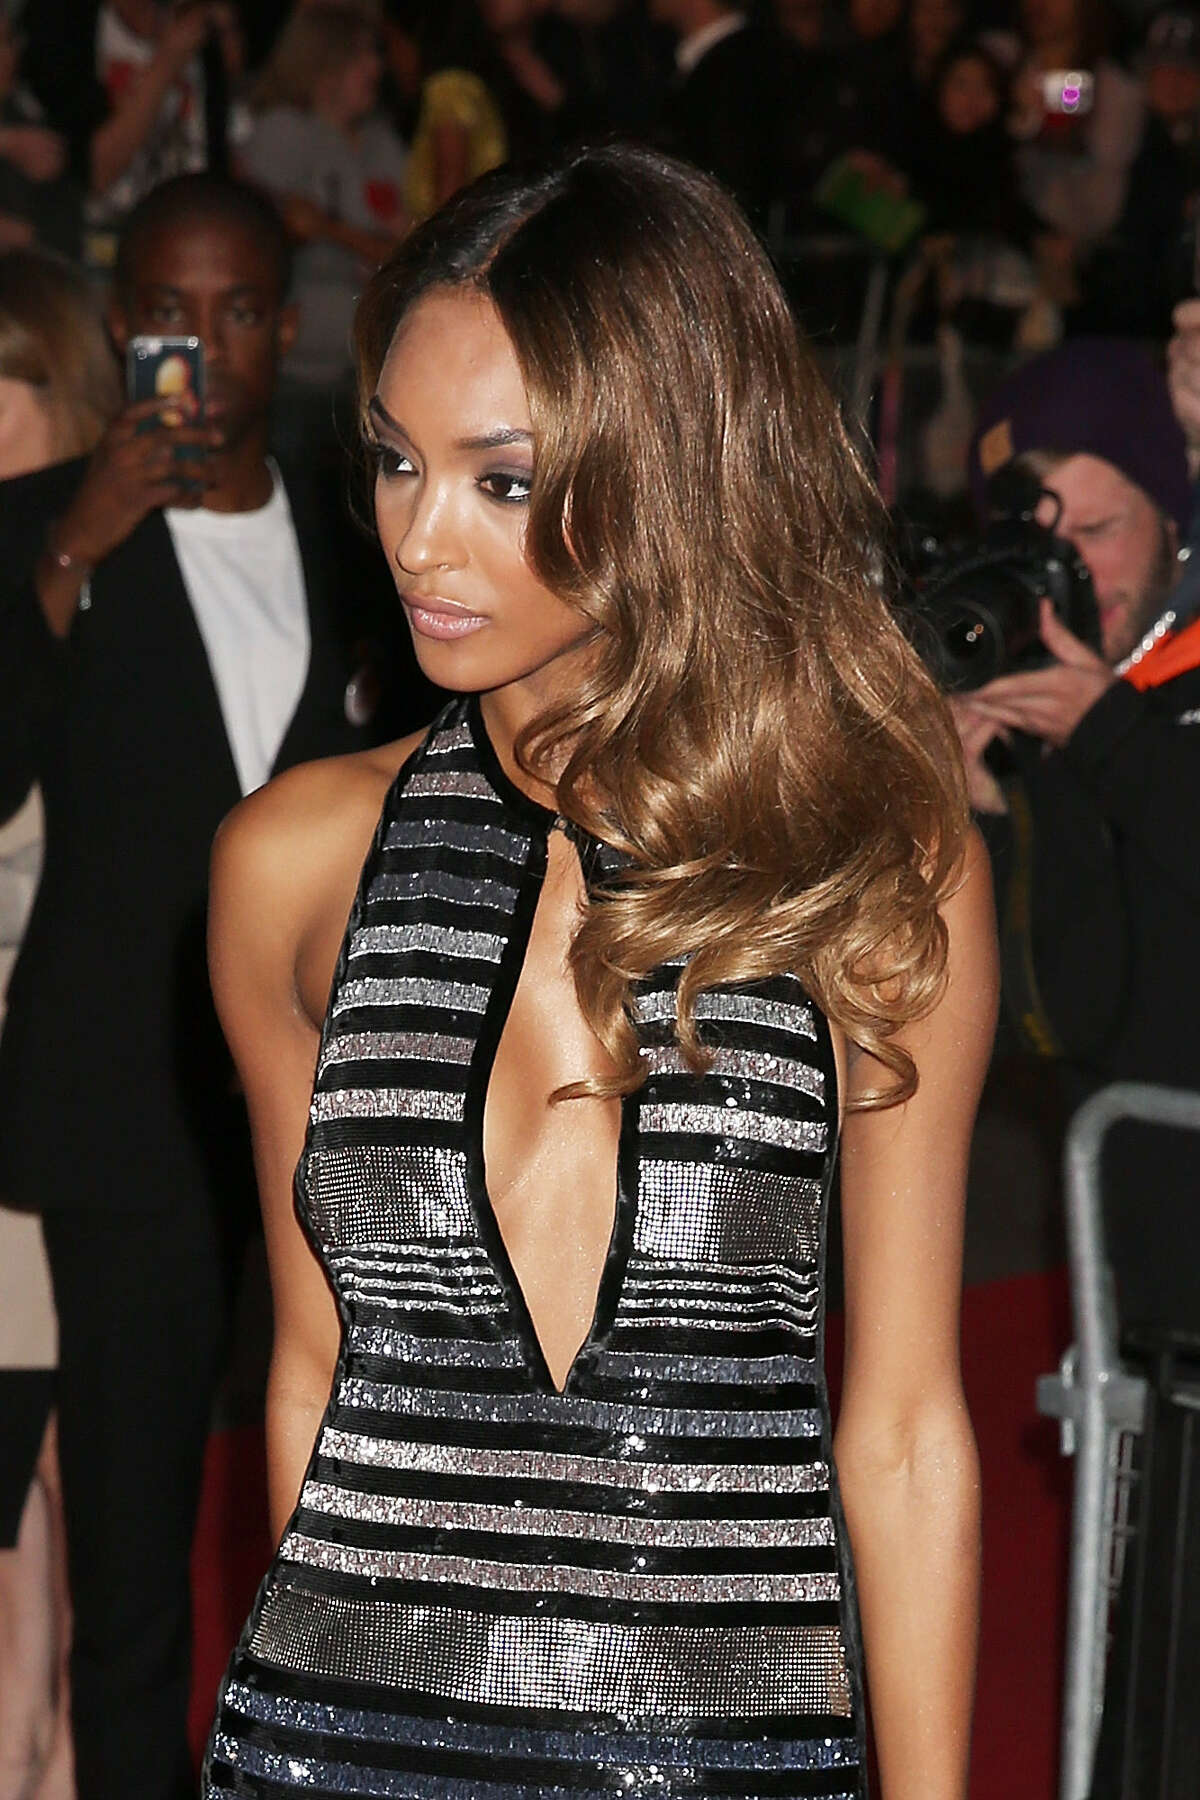 Jourdan Dunn attends the GQ Men Of The Year Awards at The Royal Opera House on September 8, 2015 in London, England.